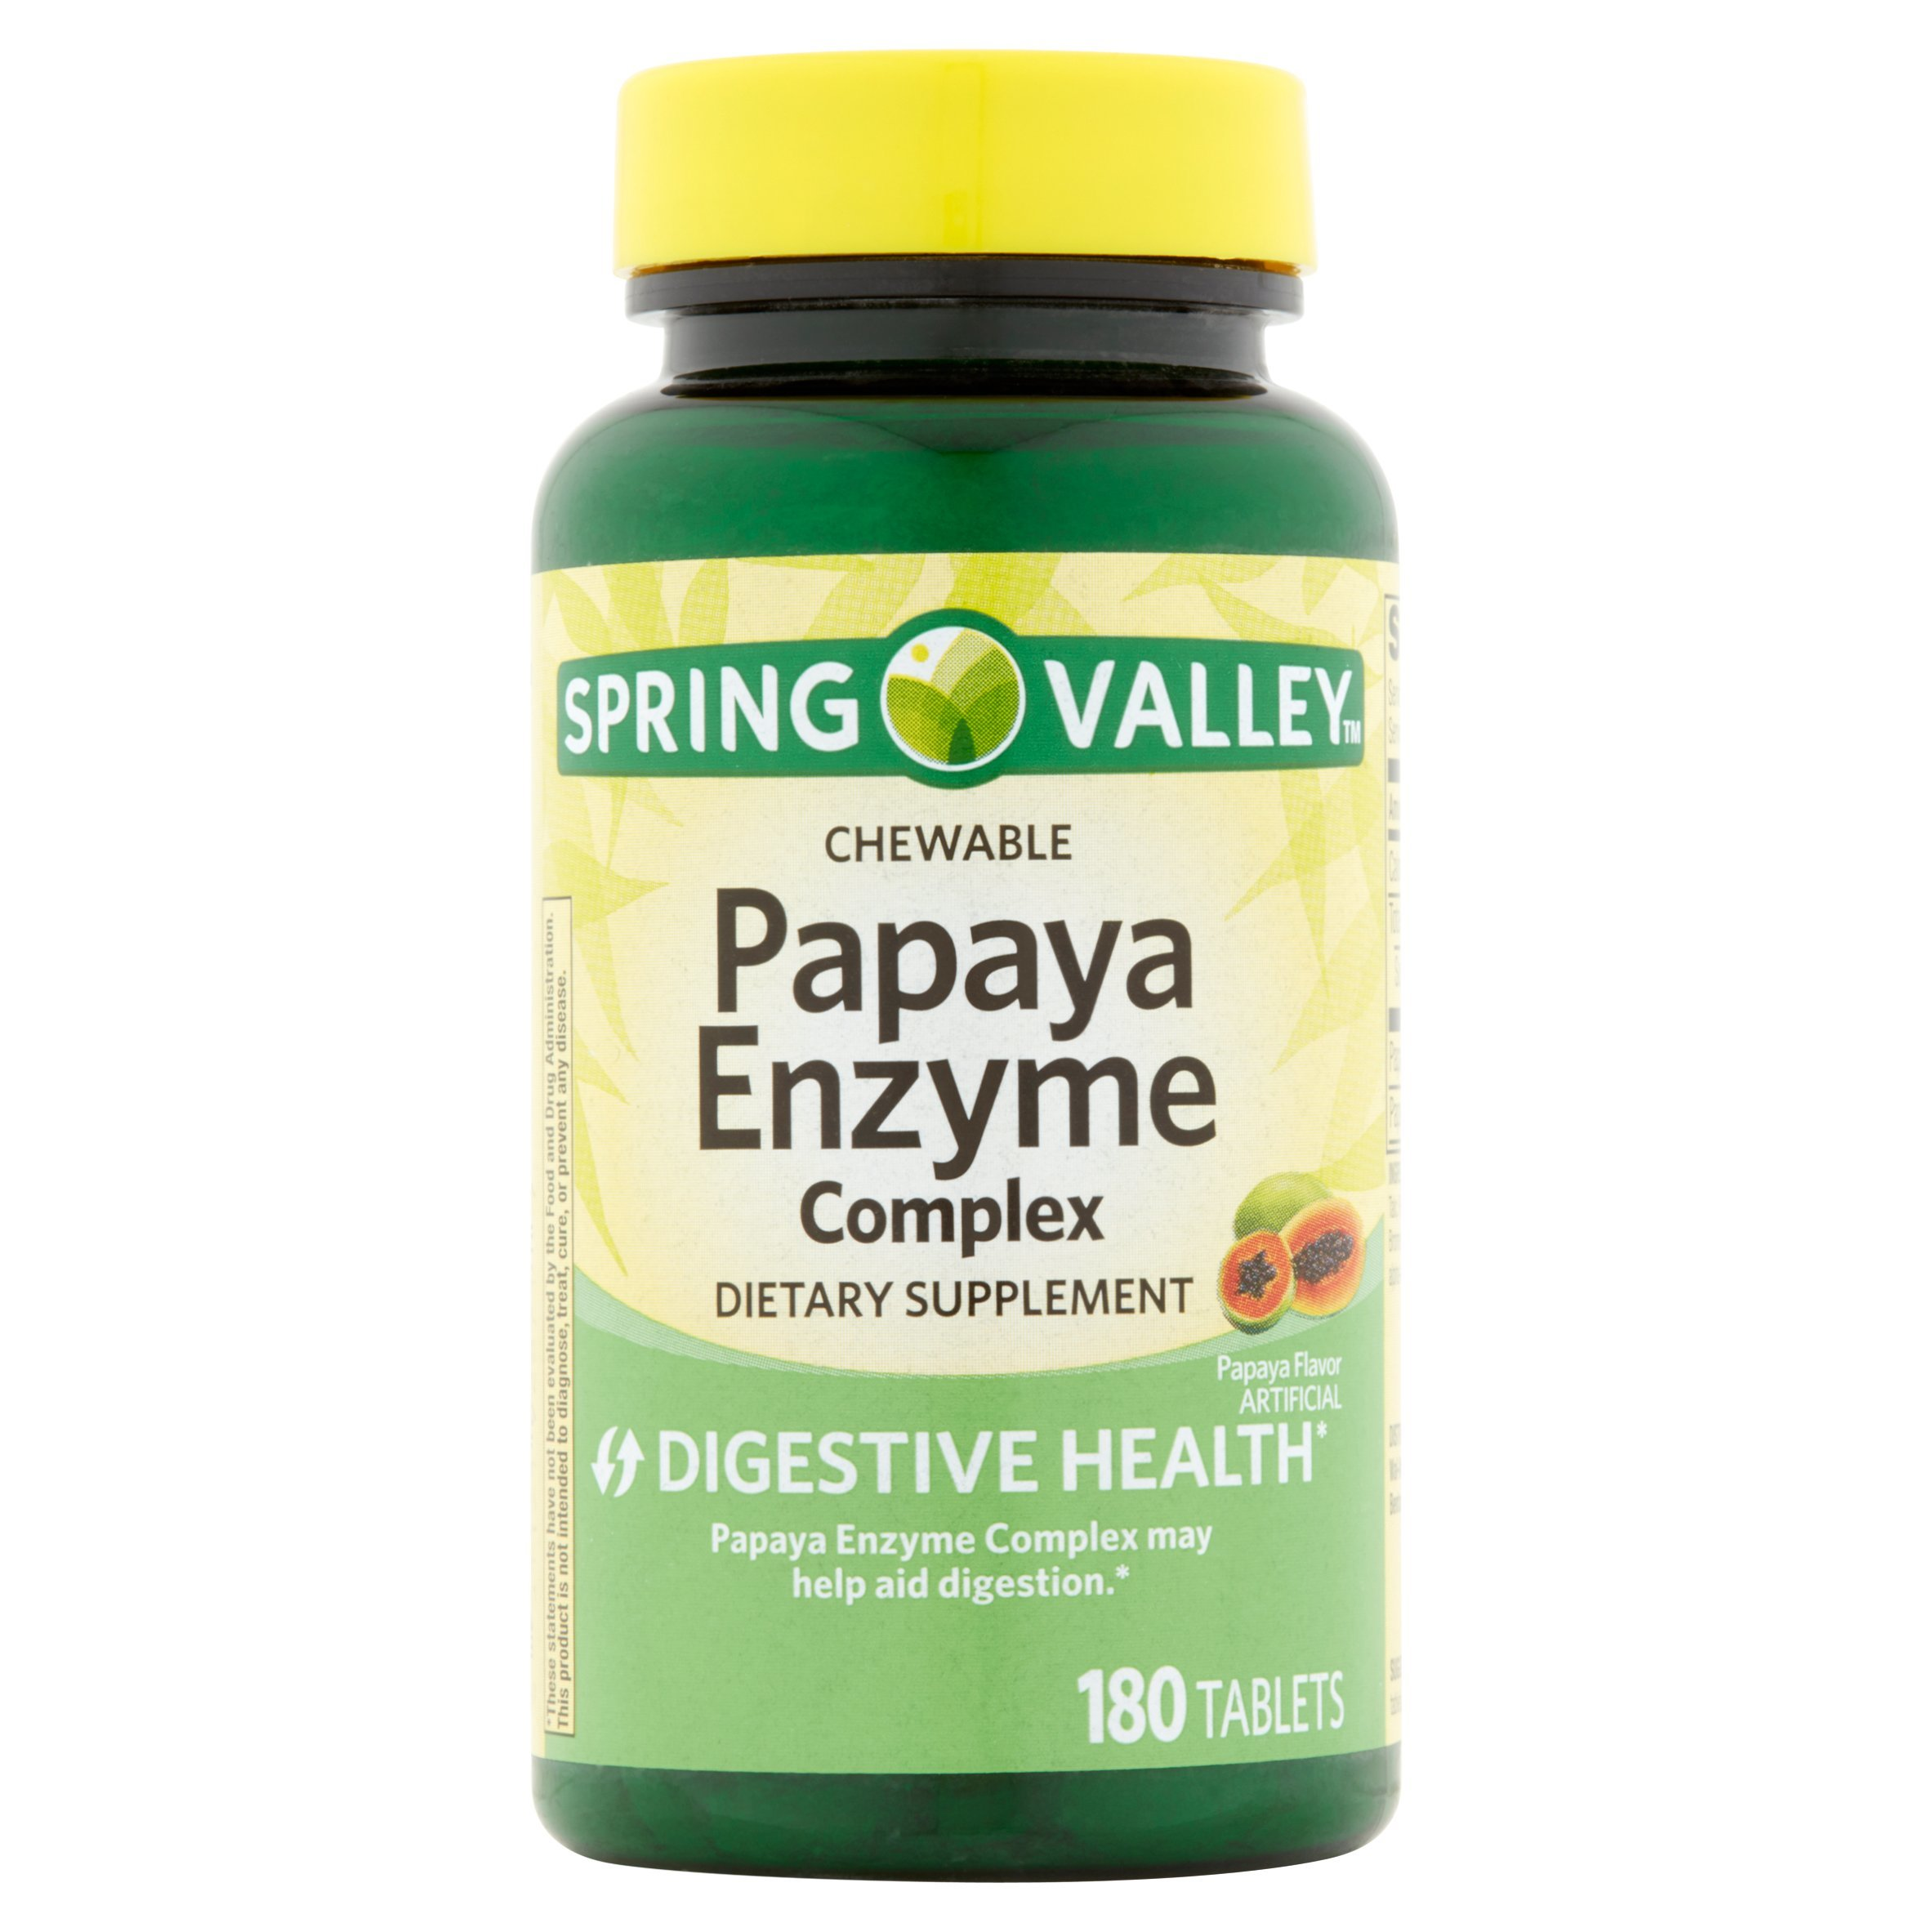 Papaya Enzyme Pictures